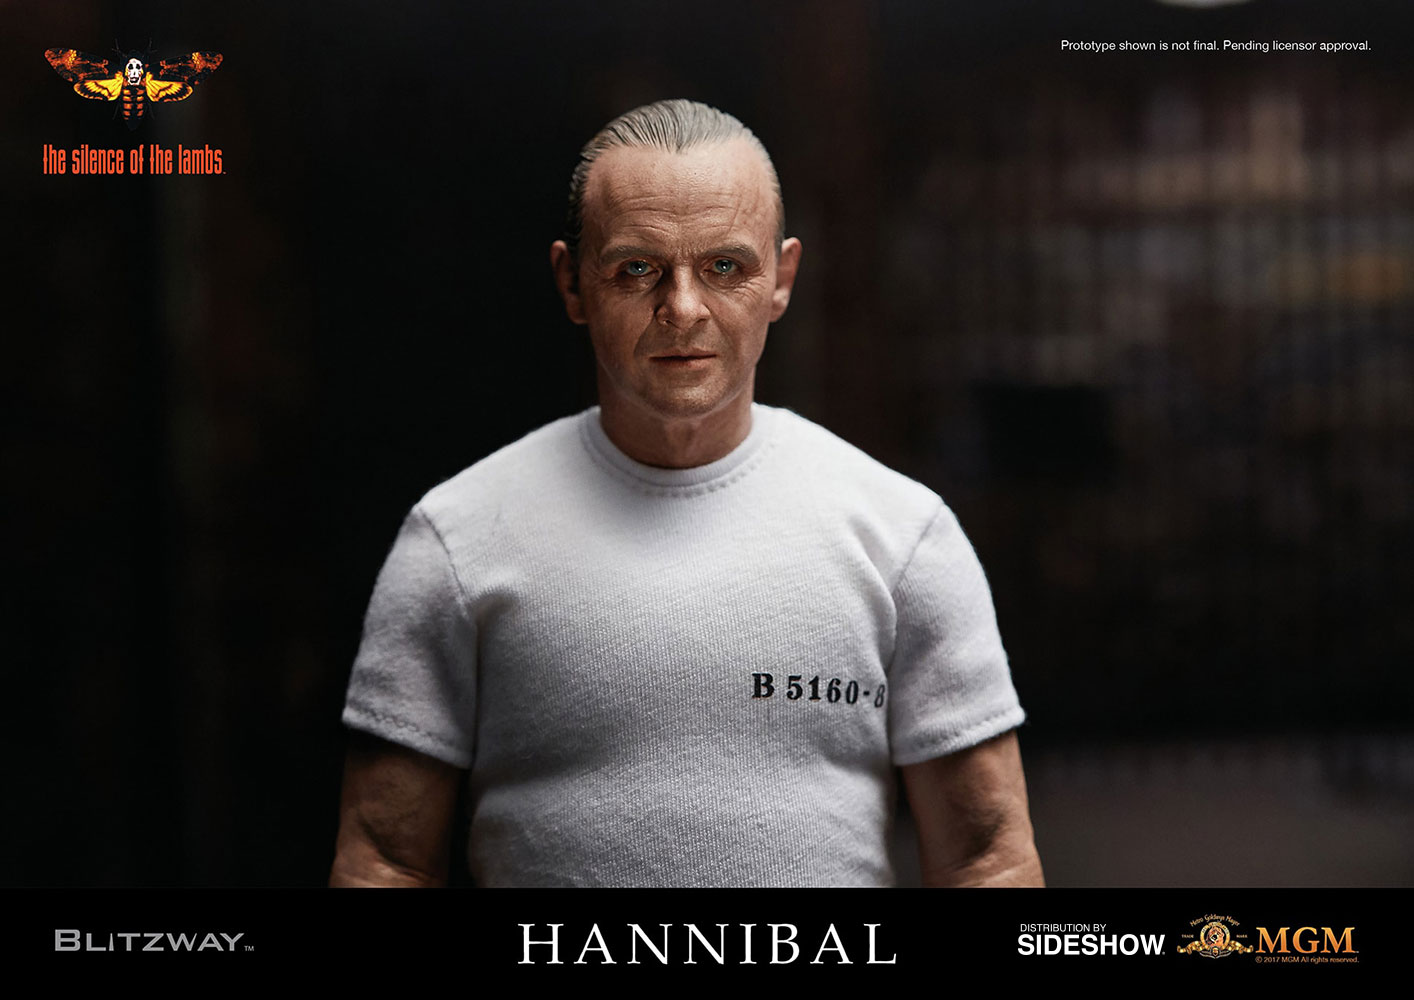 Future Man Serie >> The Silence of the Lambs Hannibal Lecter White Prison Unifor | Sideshow Collectibles